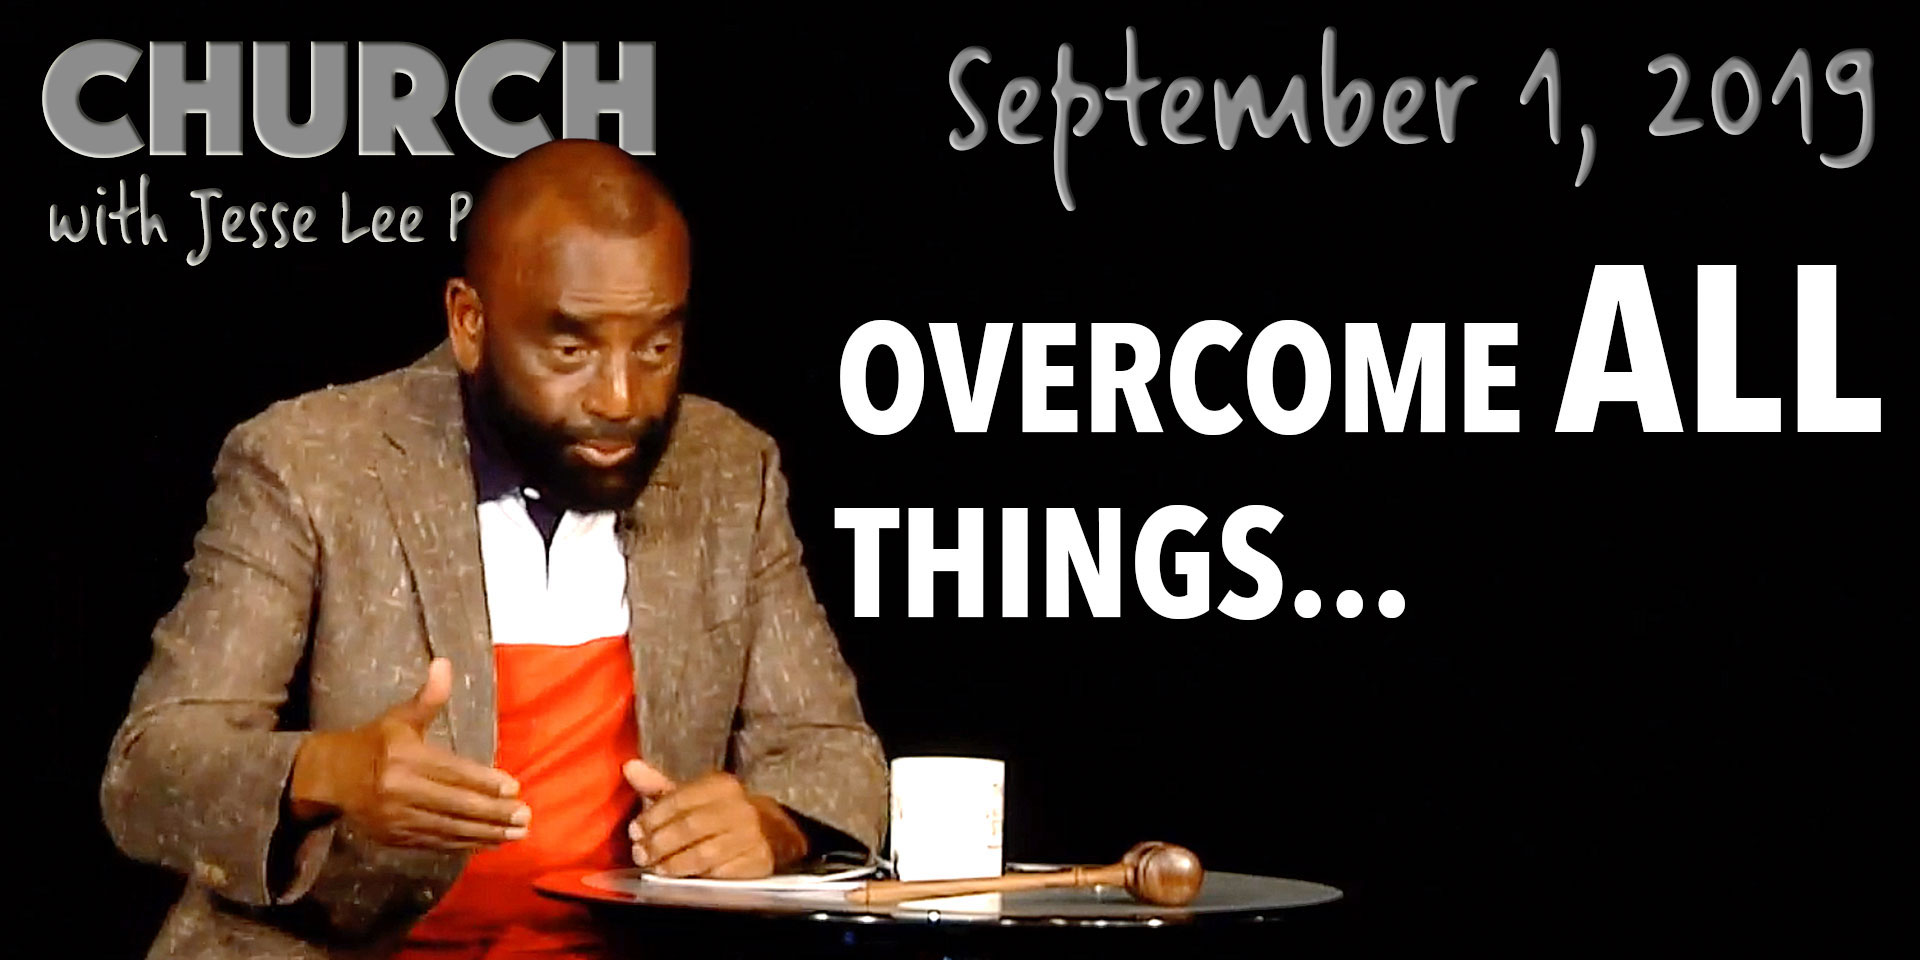 Overcome All Things... (Church, Sept 1, 2019)